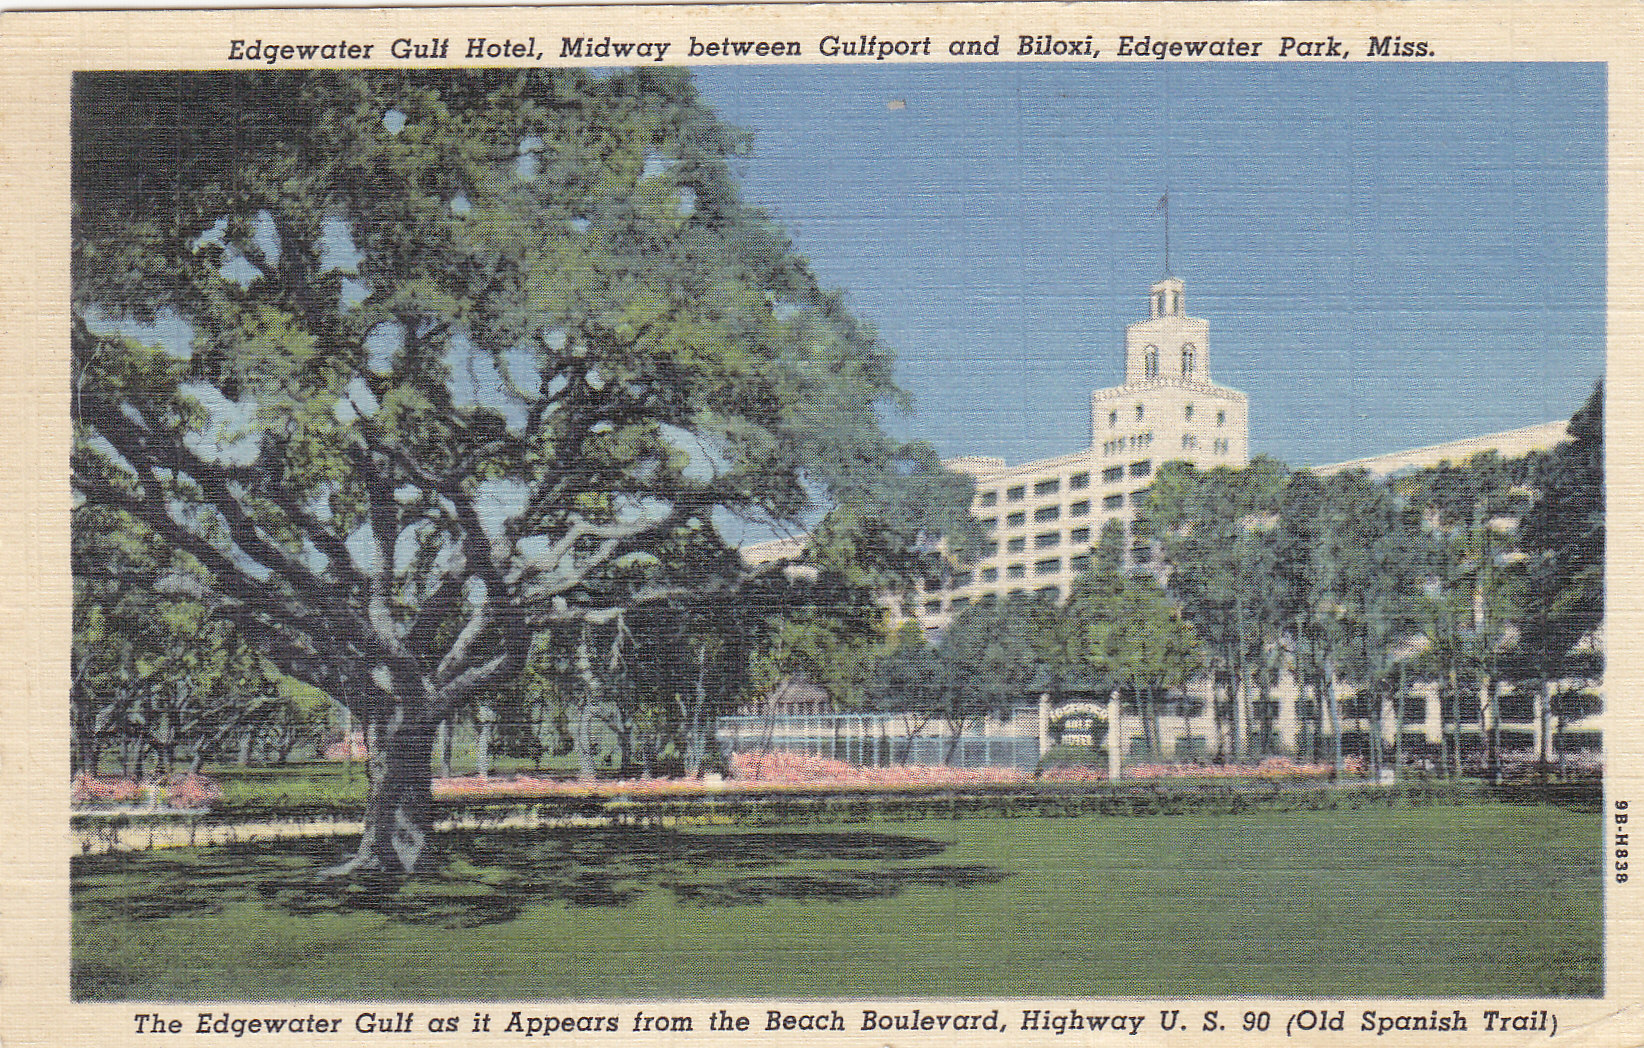 Edgewater gulf hotel in mississippi moore s postcard museum